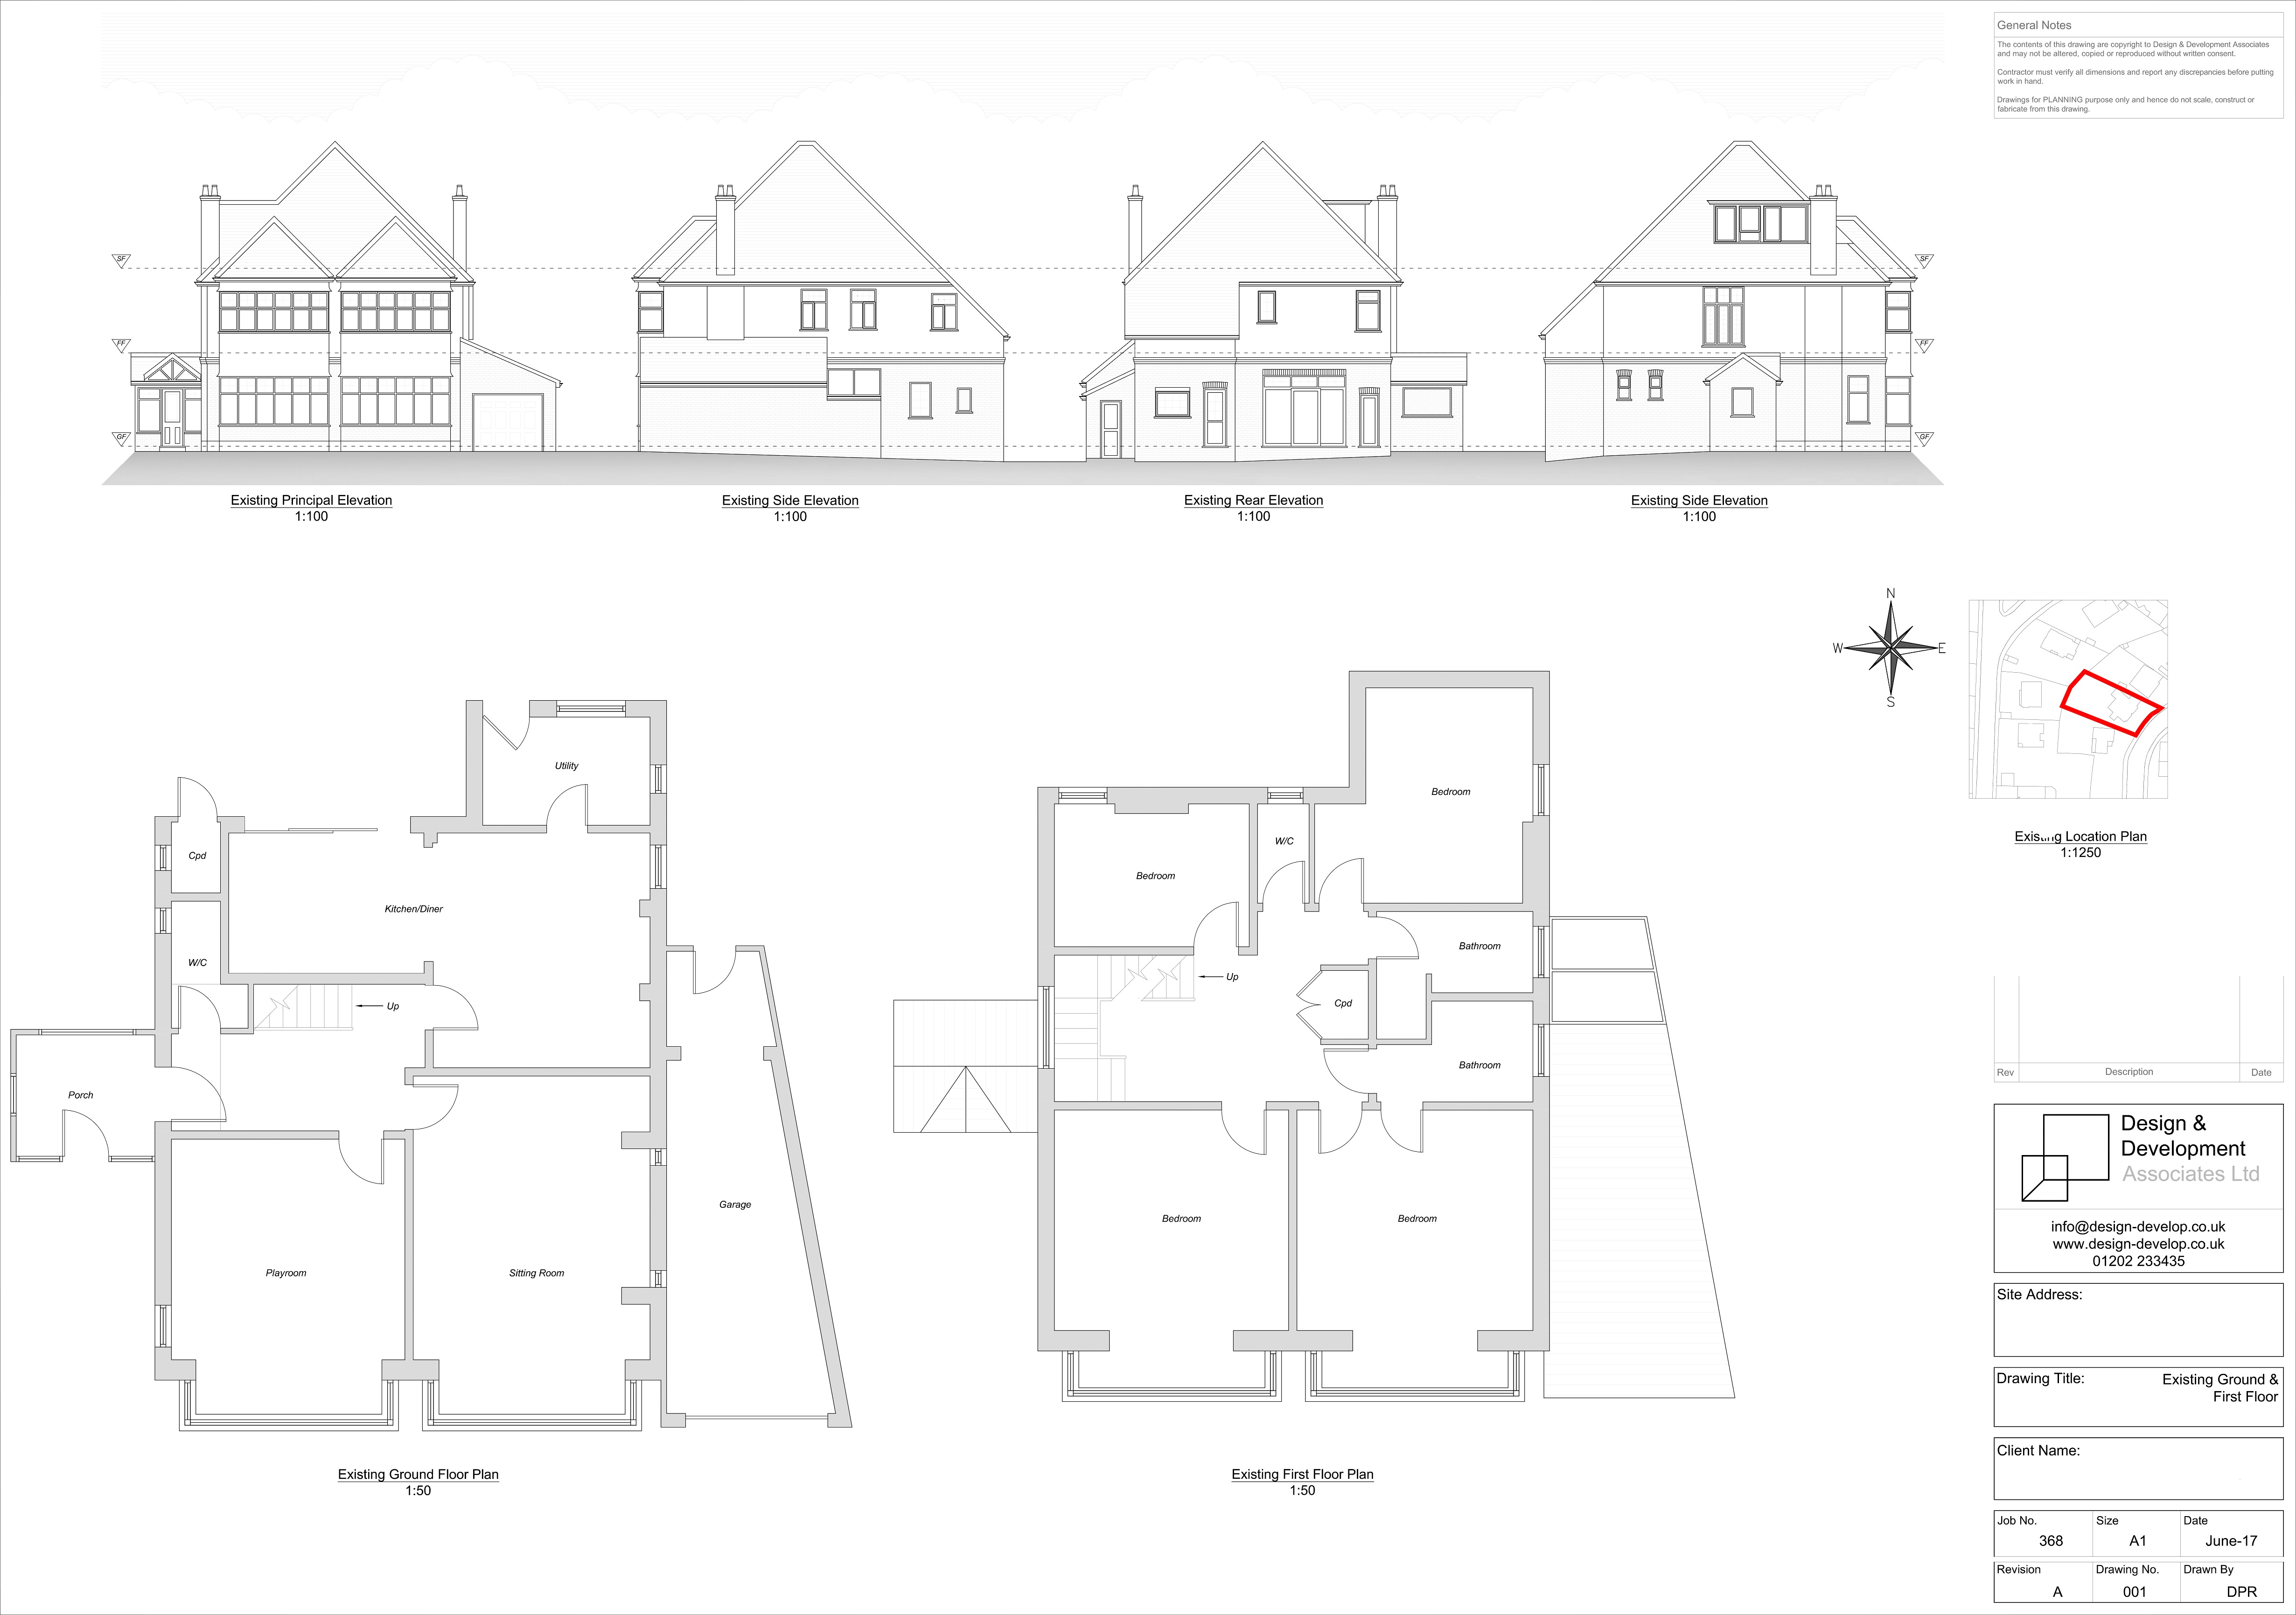 Existing Ground & First Floor Plans